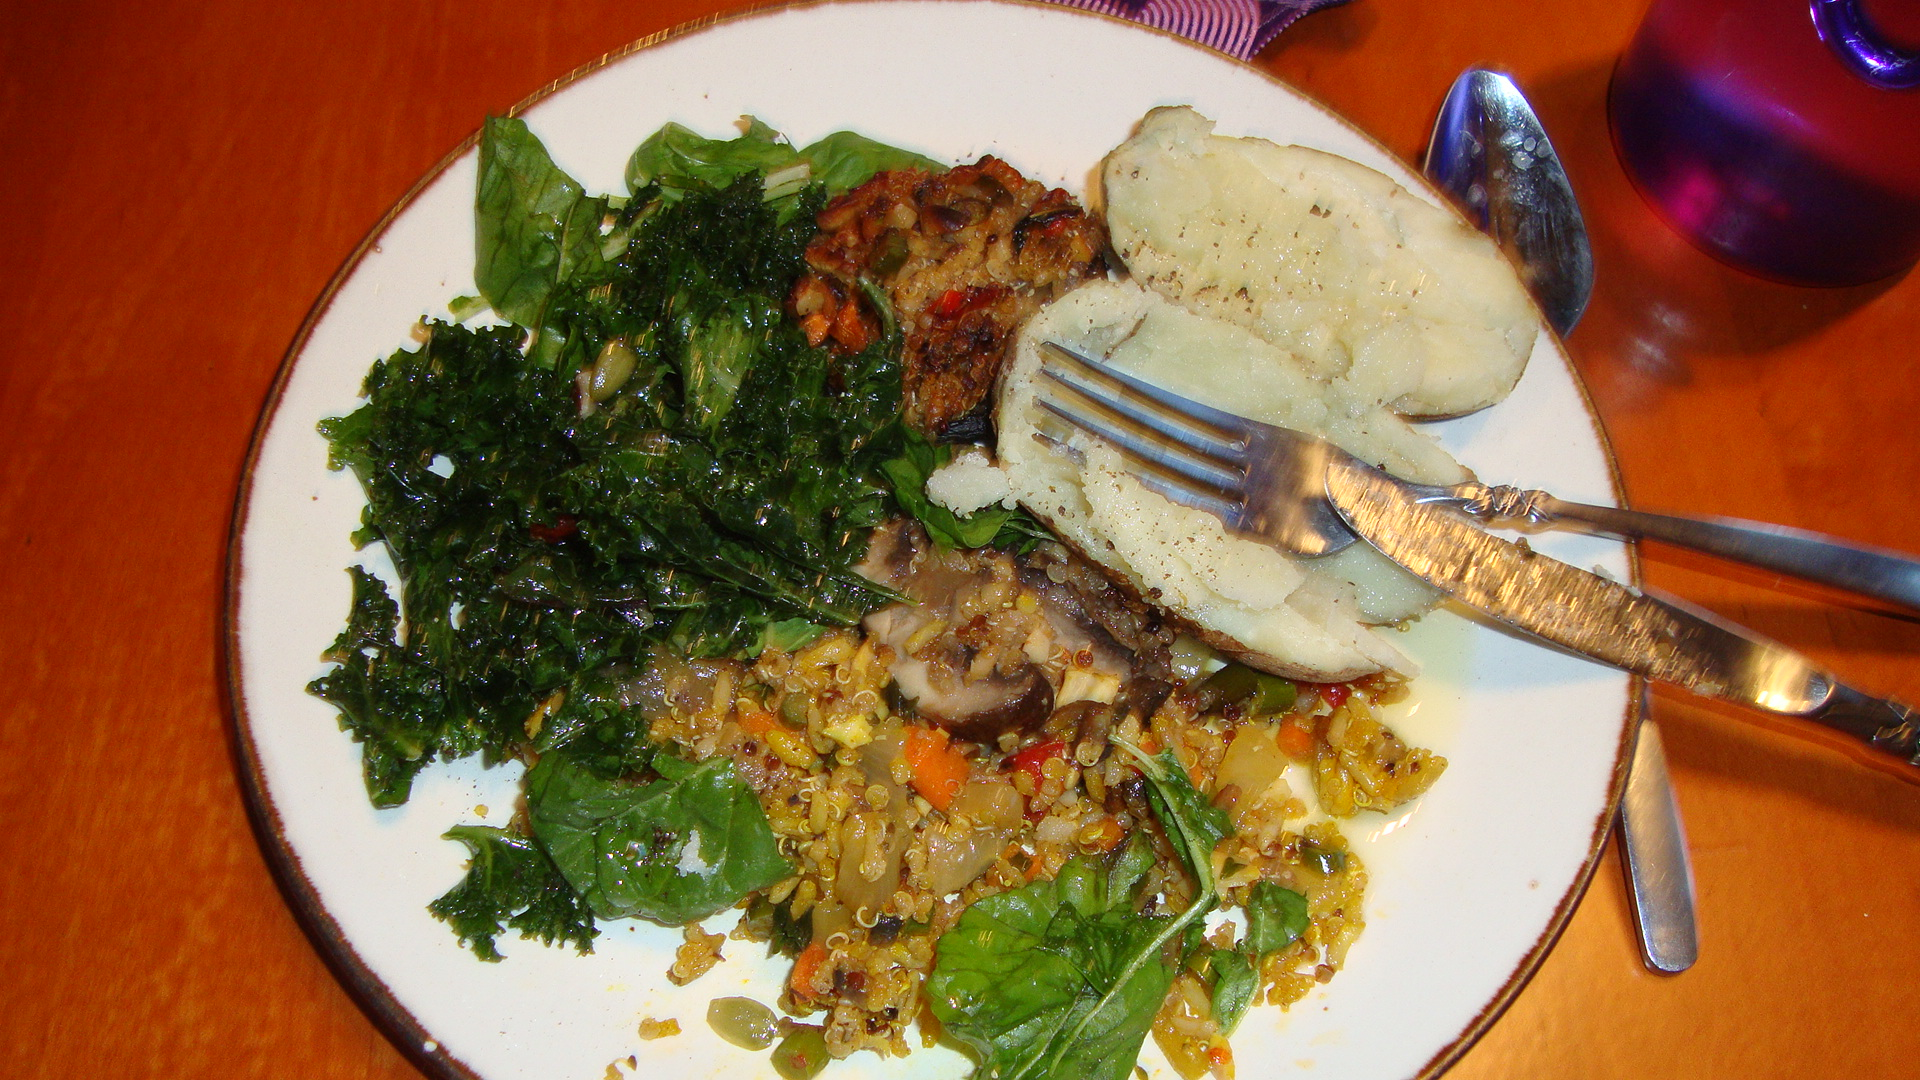 Delicious meals await those on retreat